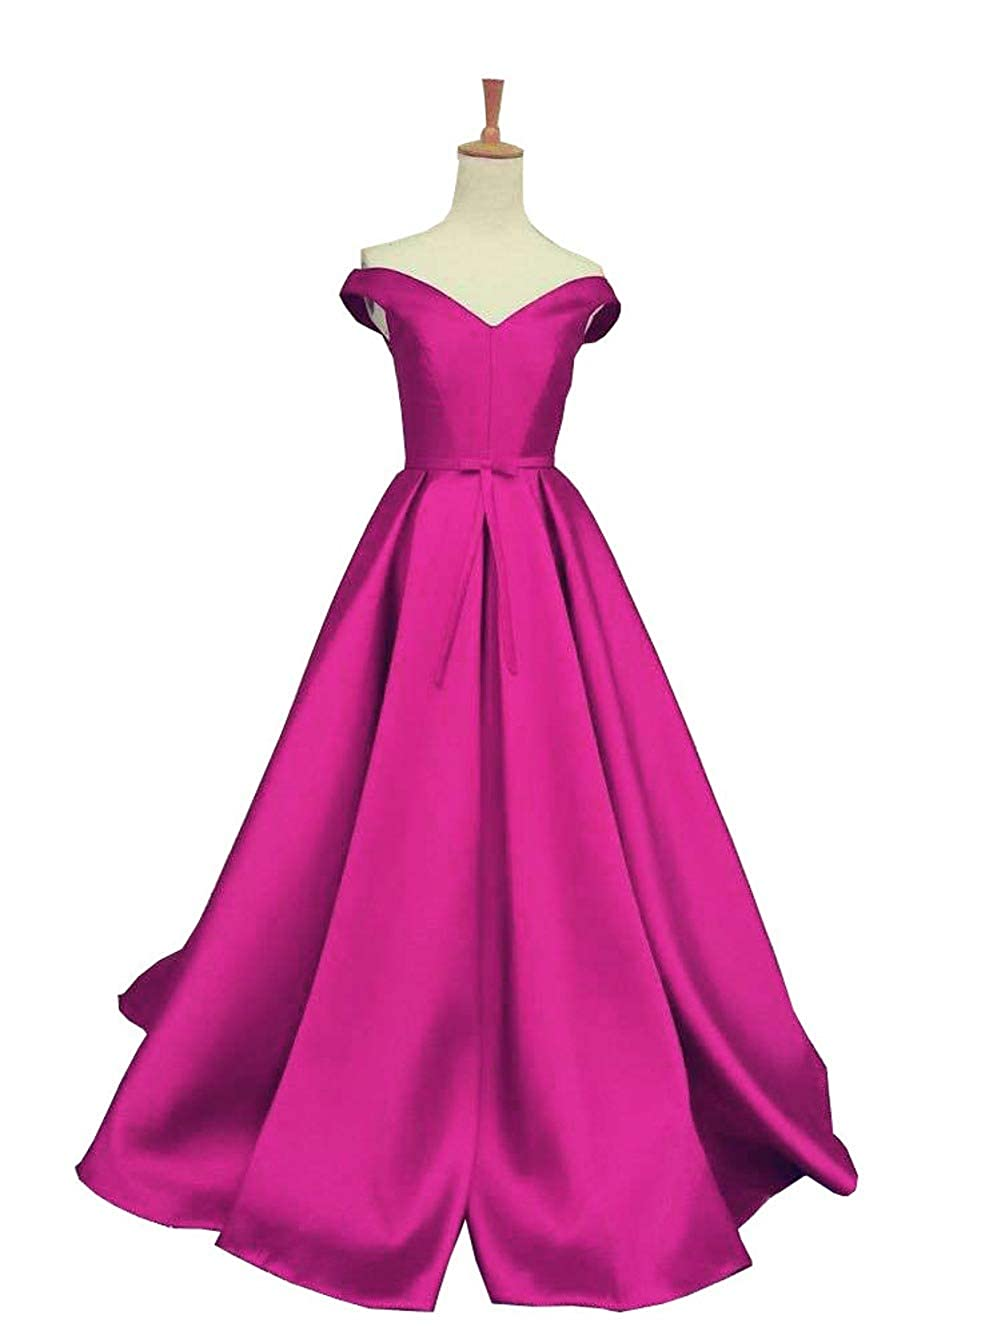 Fuchsia DreamSkirts Women's Off The Shoulder ALine Evening Ball Gowns with Bow